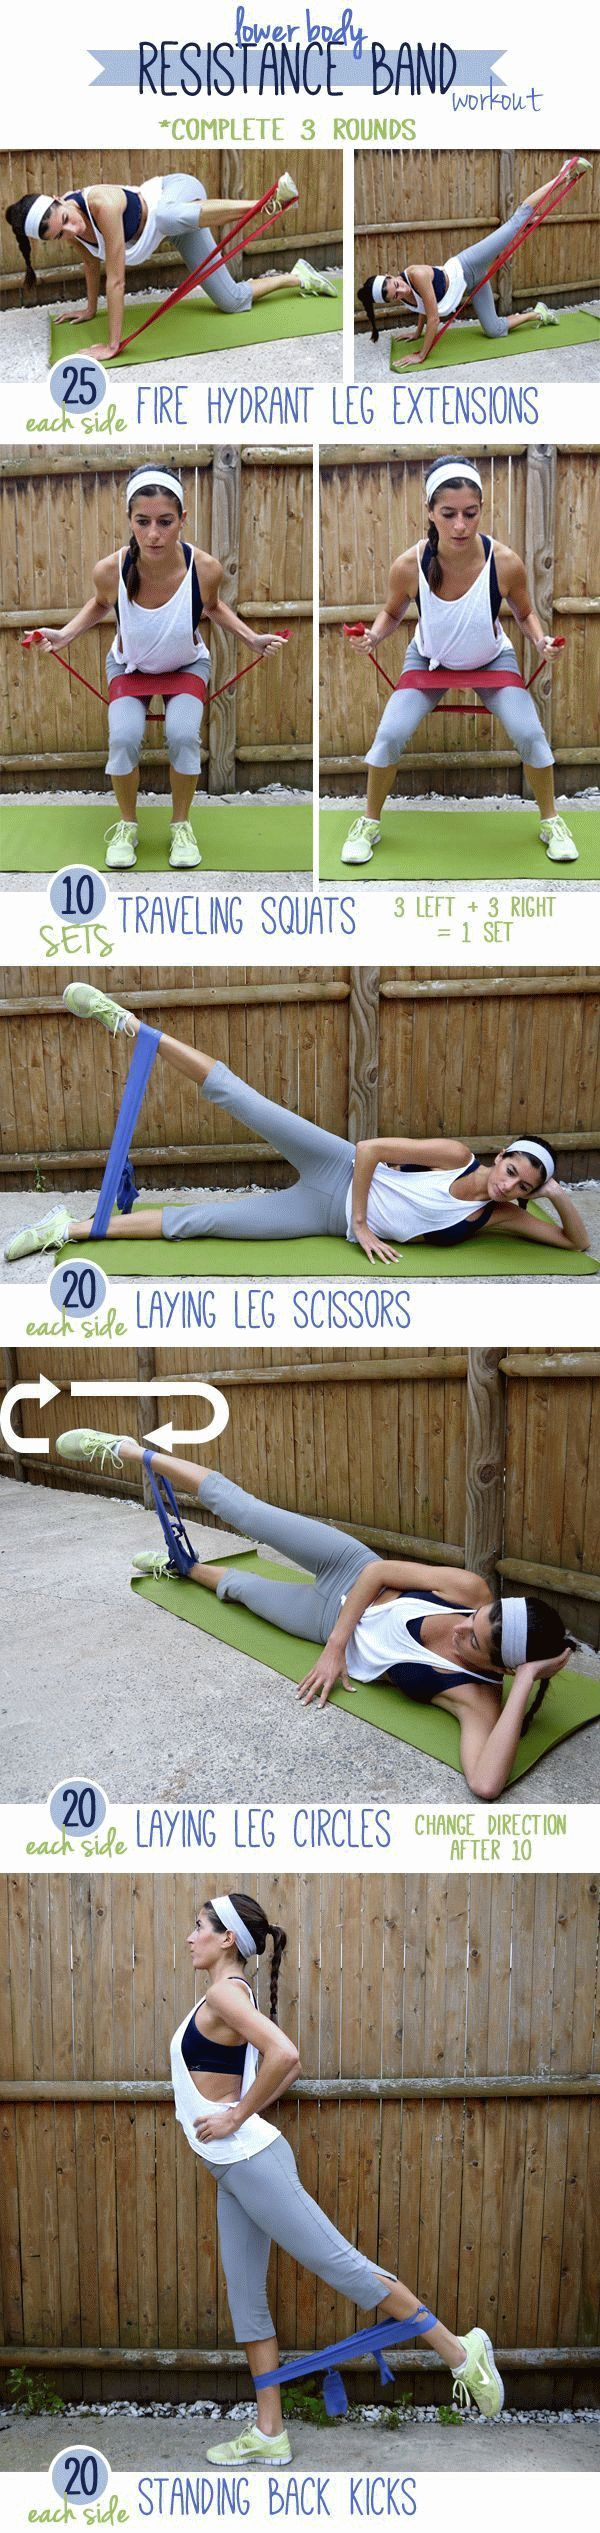 Reduce knee pain with Can-do Elastic Resistance Bands! http://www.orthoco.com/cando_latex_therapy_band_s/21.htm